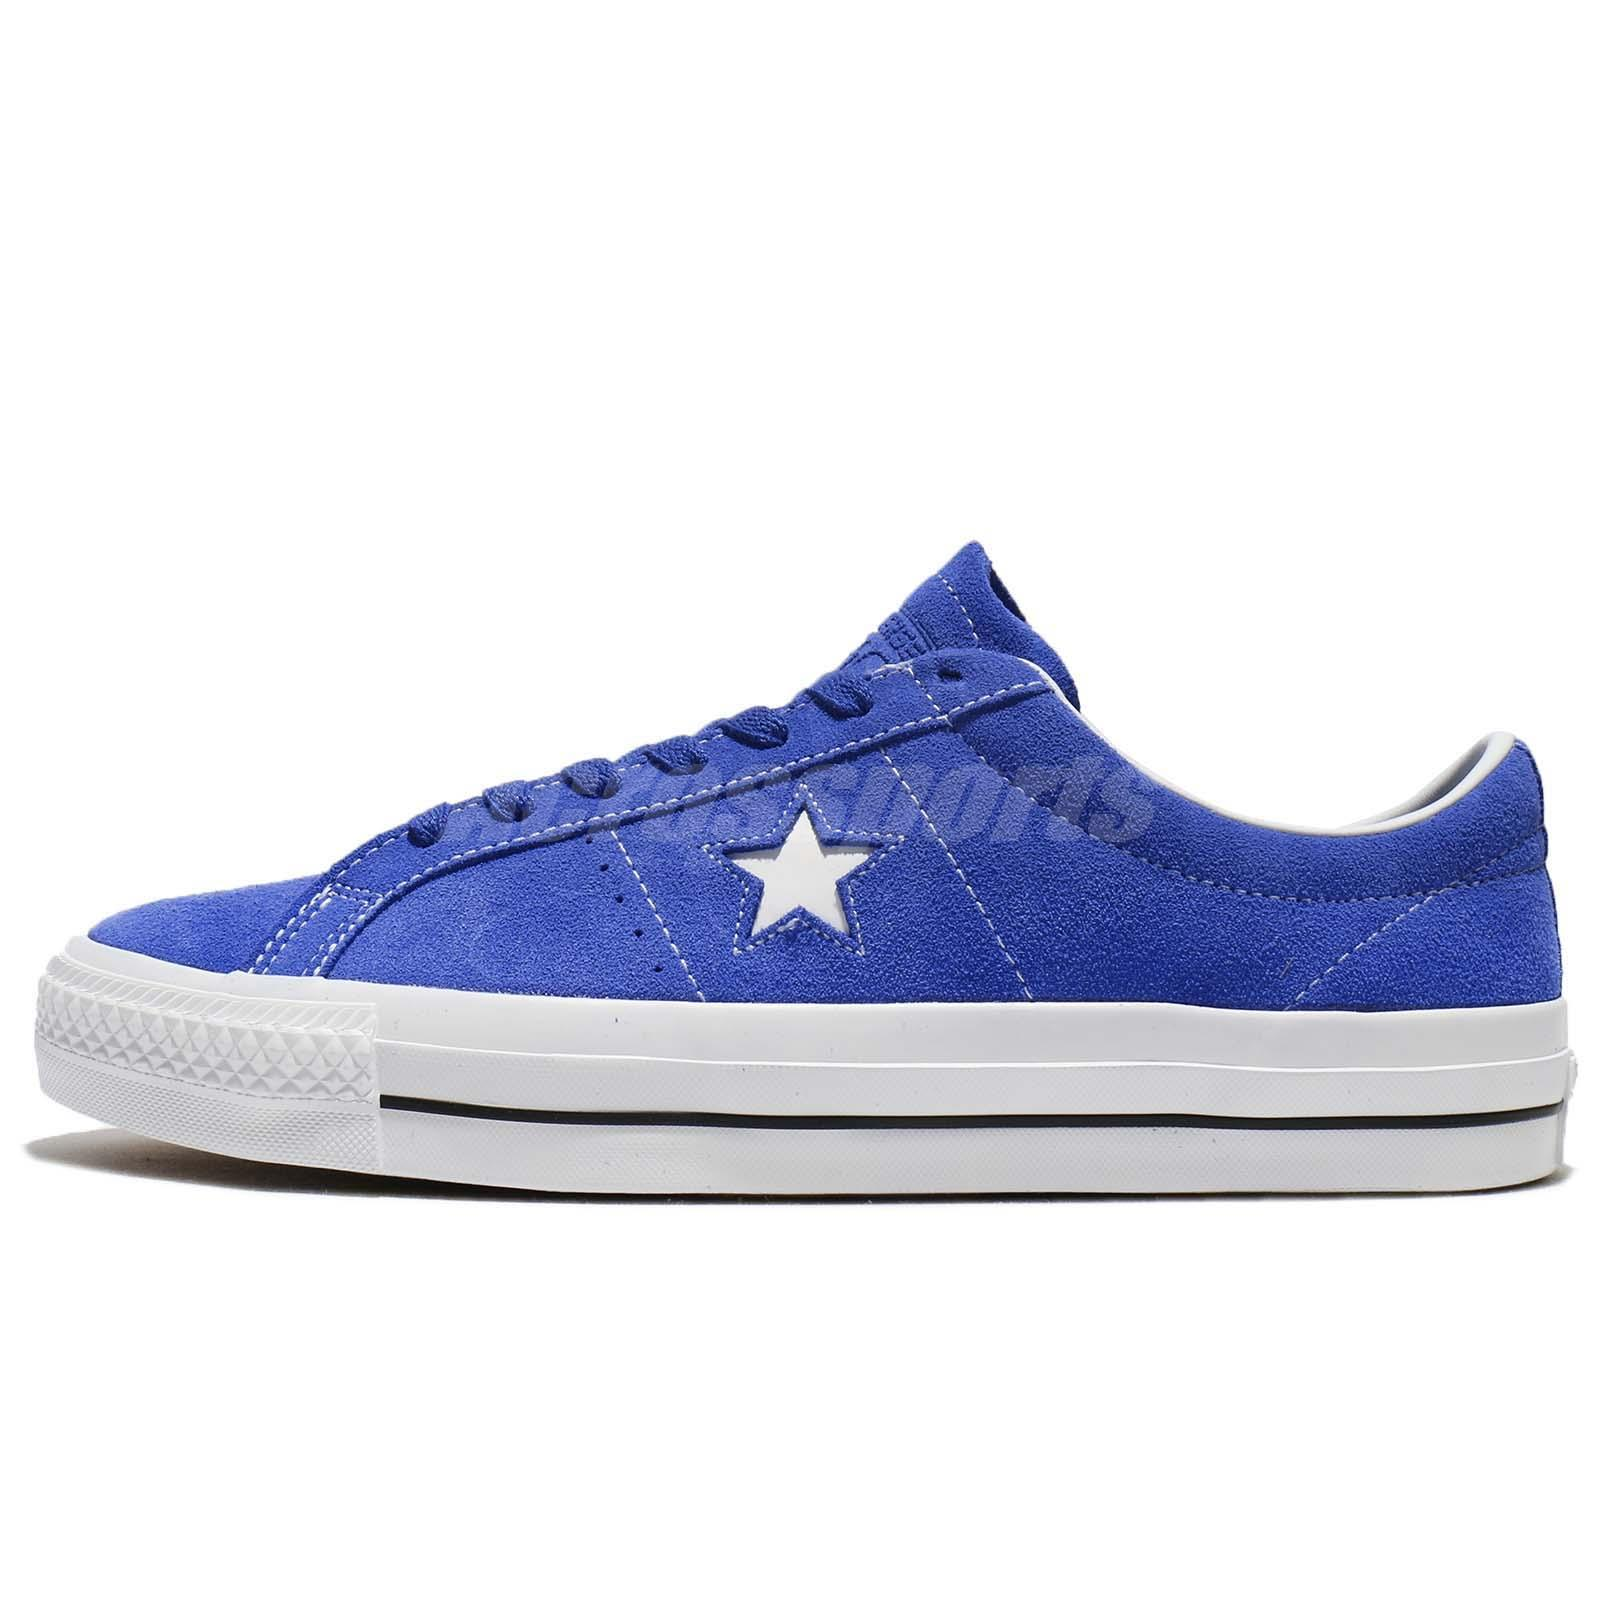 Converse One Star Pro Suede Blue White Men Women Shoes Sneakers 159510C de54b0db112